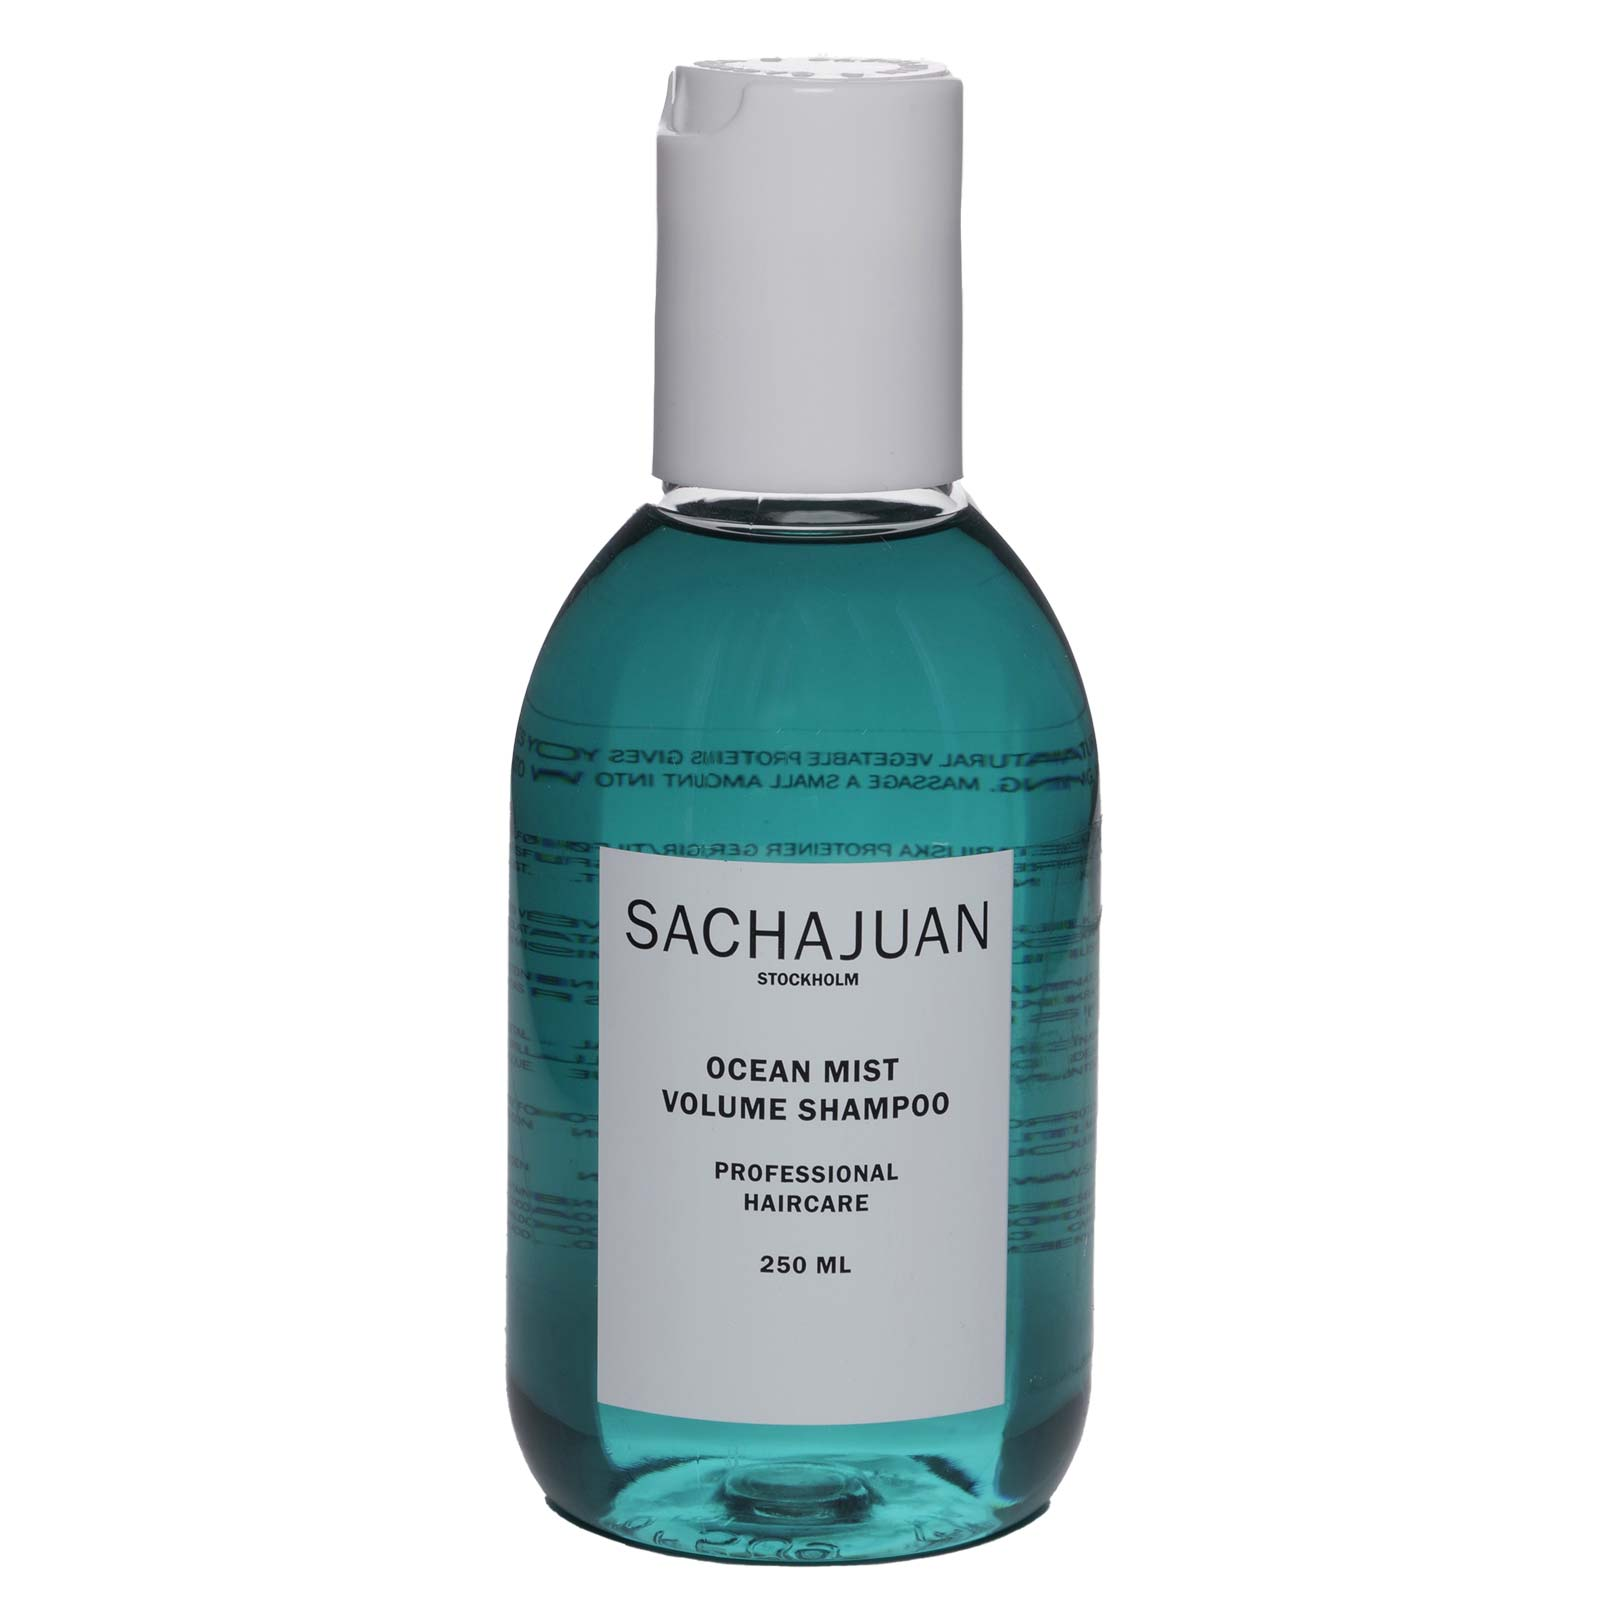 SACHA JUAN SHAMPOO OCEAN MIST, Has natural vegetable proteins that add structure, volume & strength. (250ML) (12/cs)